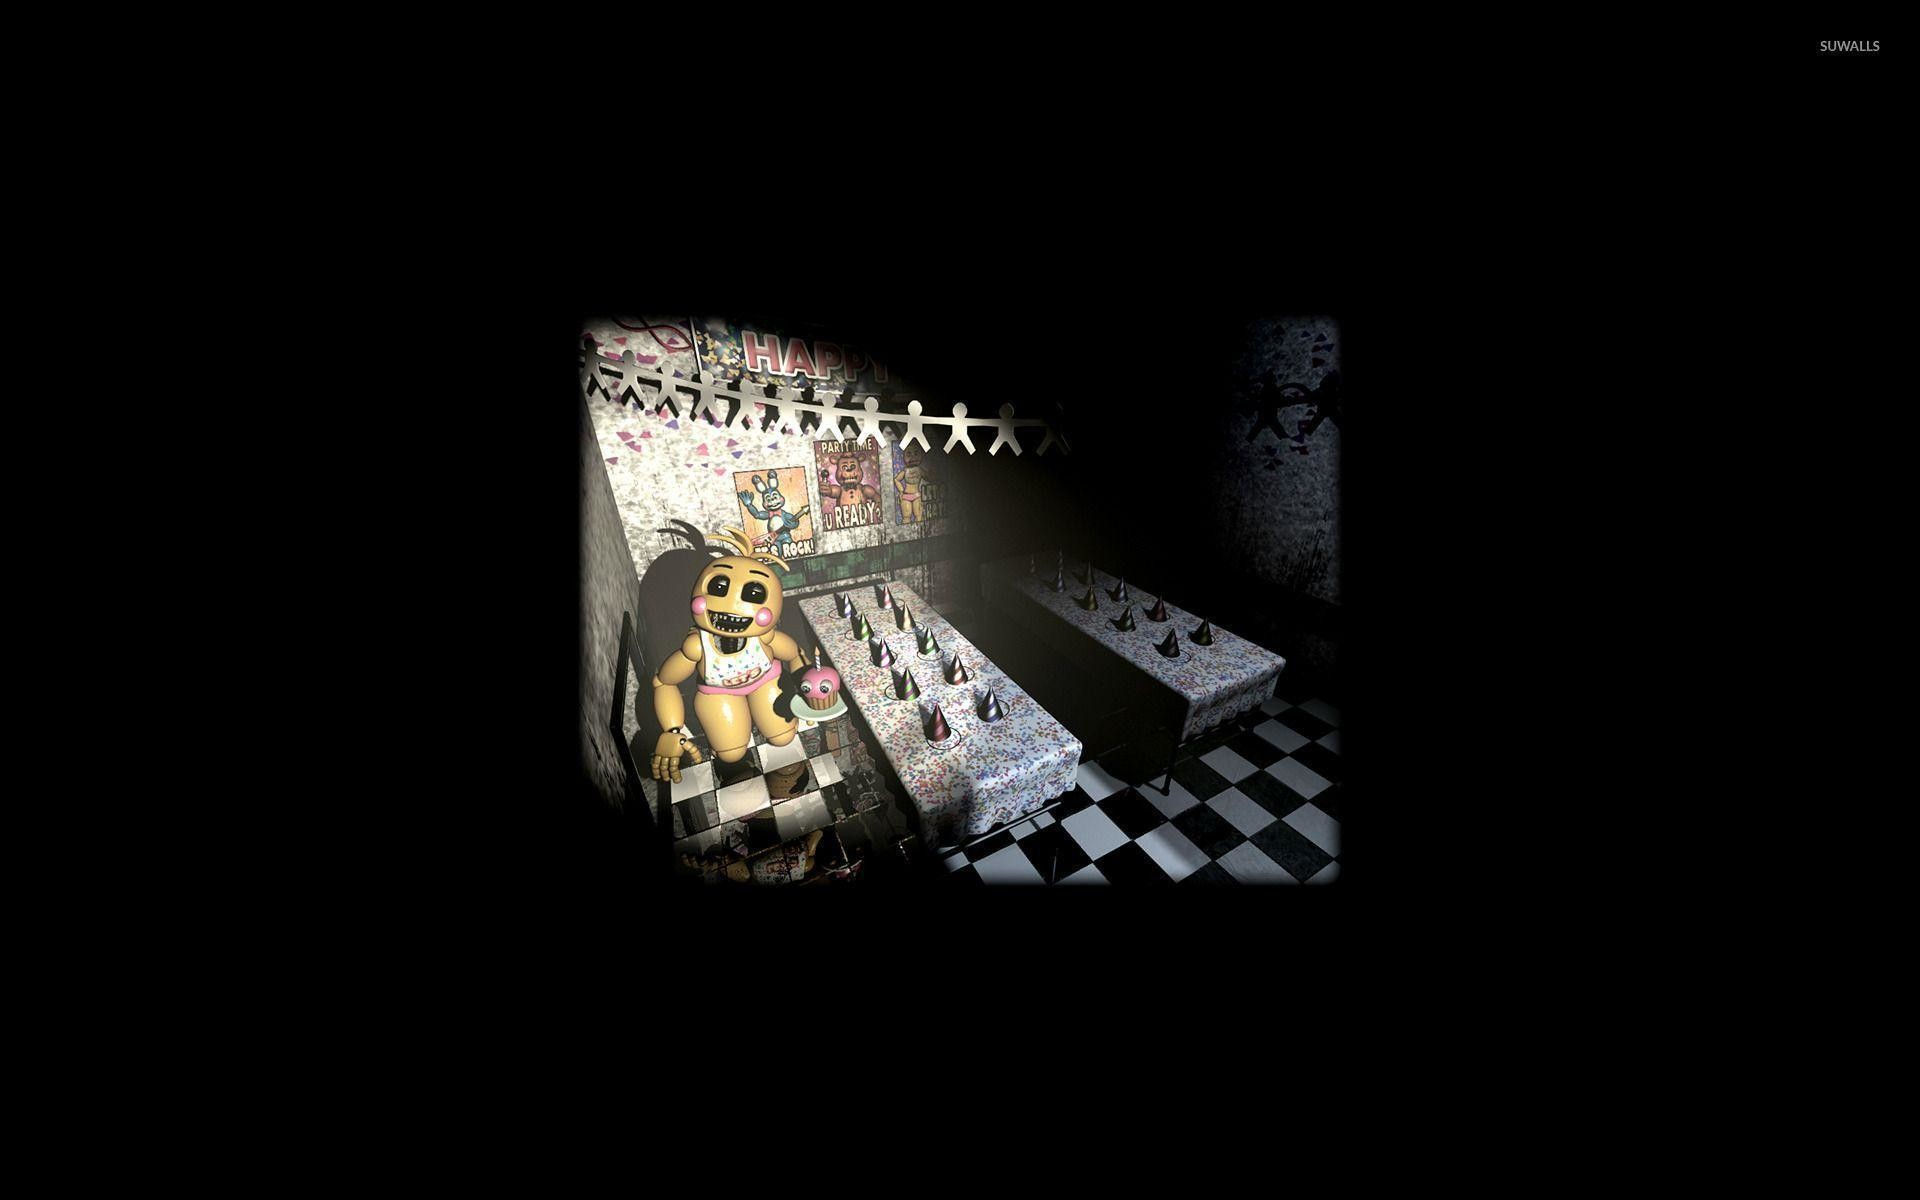 Five Nights at Freddy's wallpaper – Game wallpapers – #35600